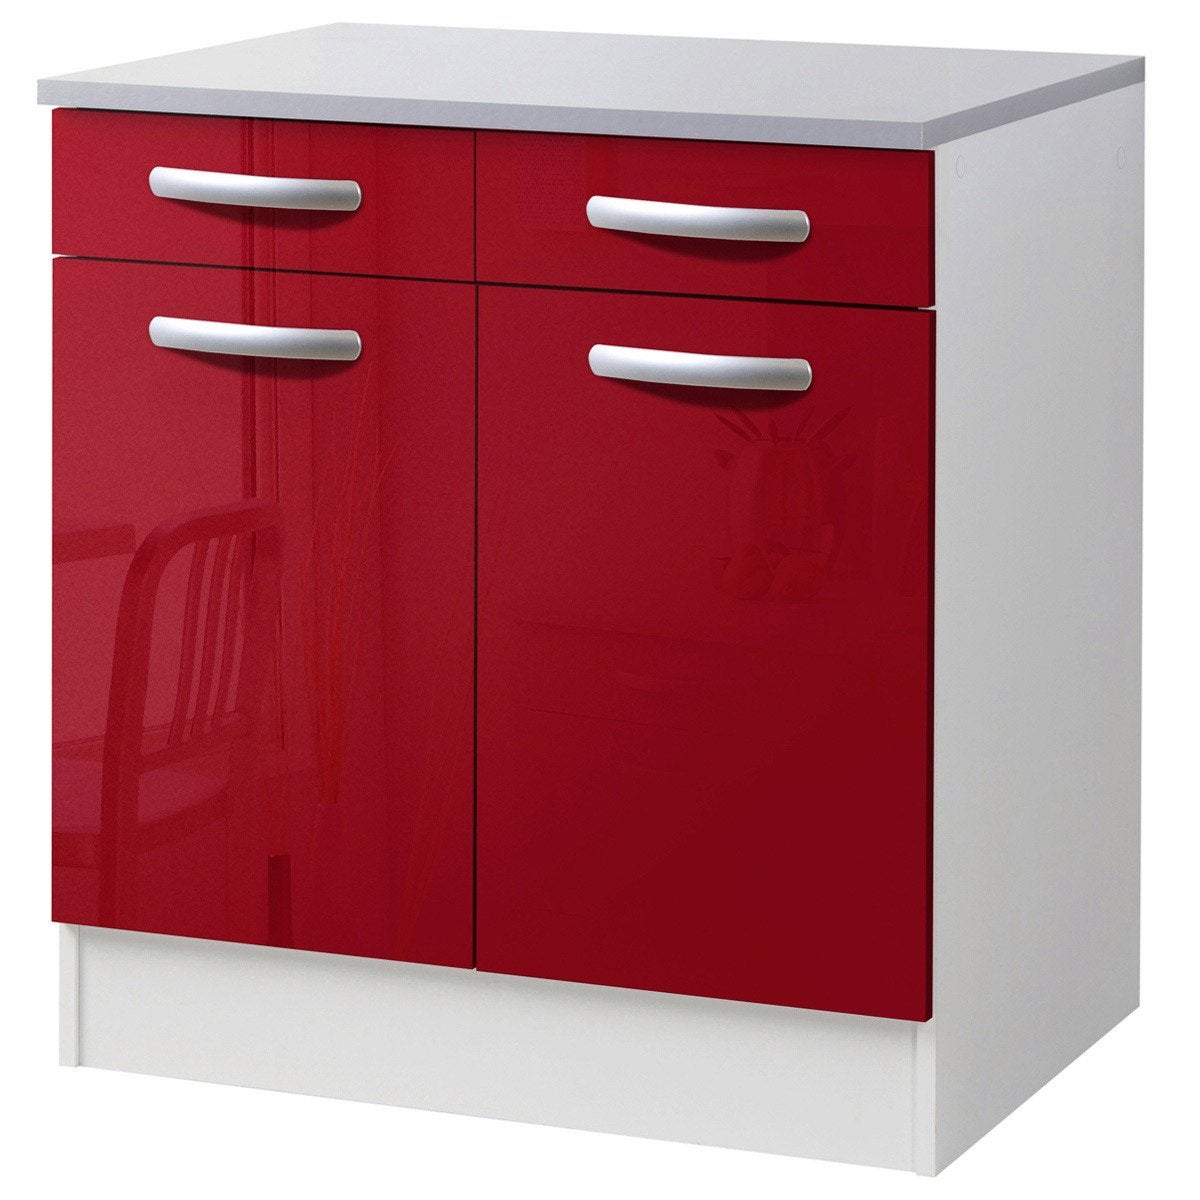 Meuble de cuisine bas 2 portes 2 tiroirs rouge brillant for Amenagement meuble bas cuisine